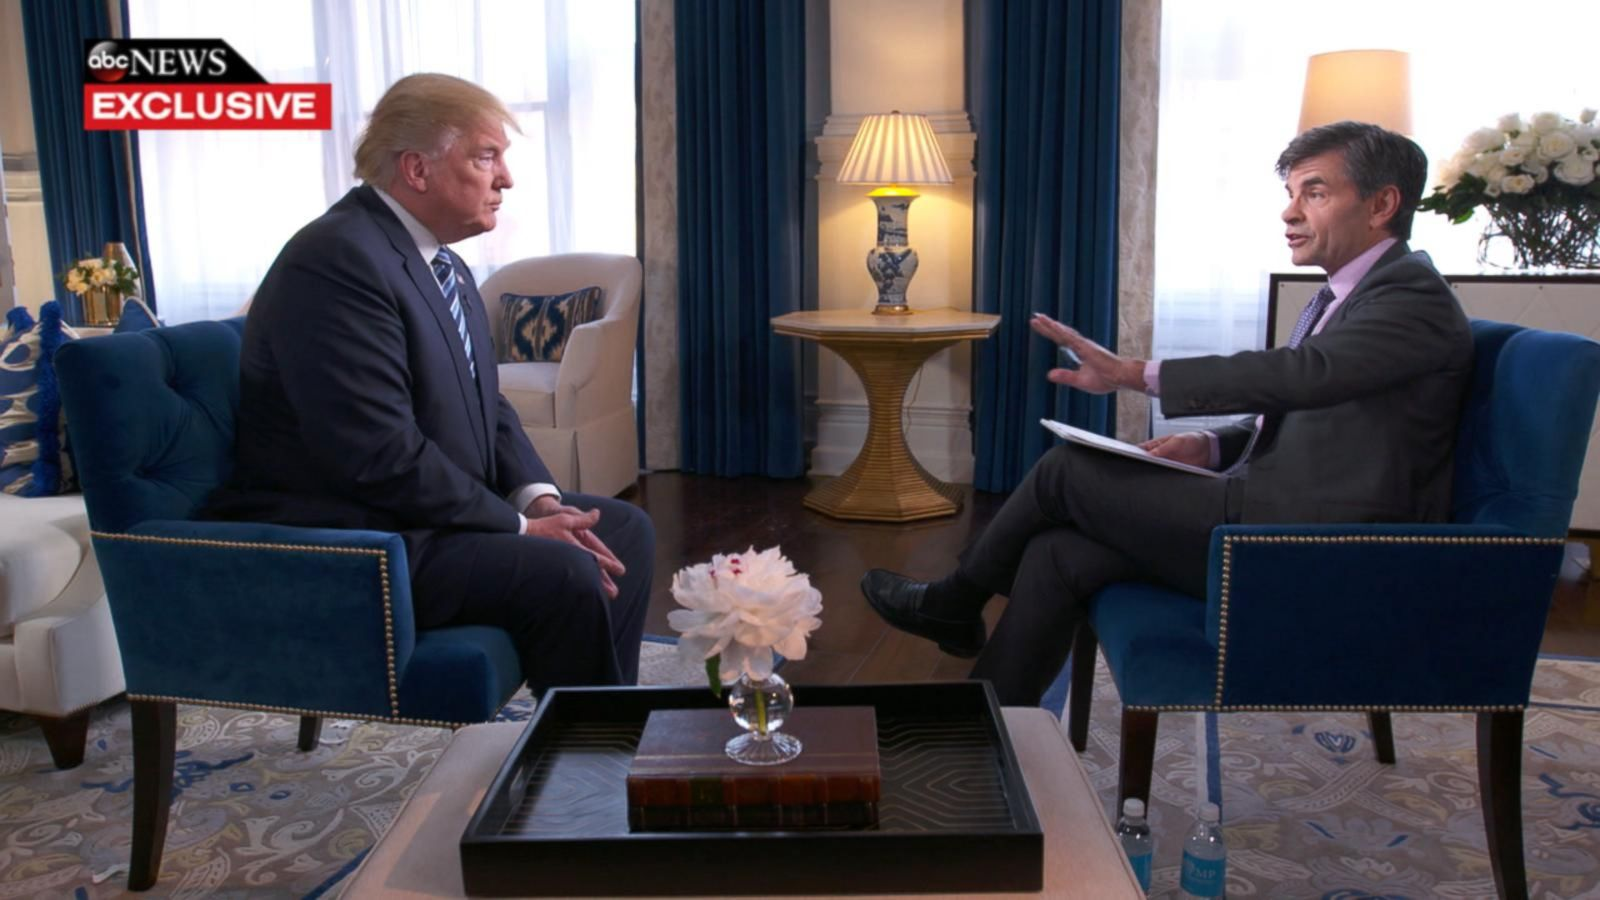 VIDEO: Donald Trump Plans to Spend More on His Campaign in Final 2 Weeks